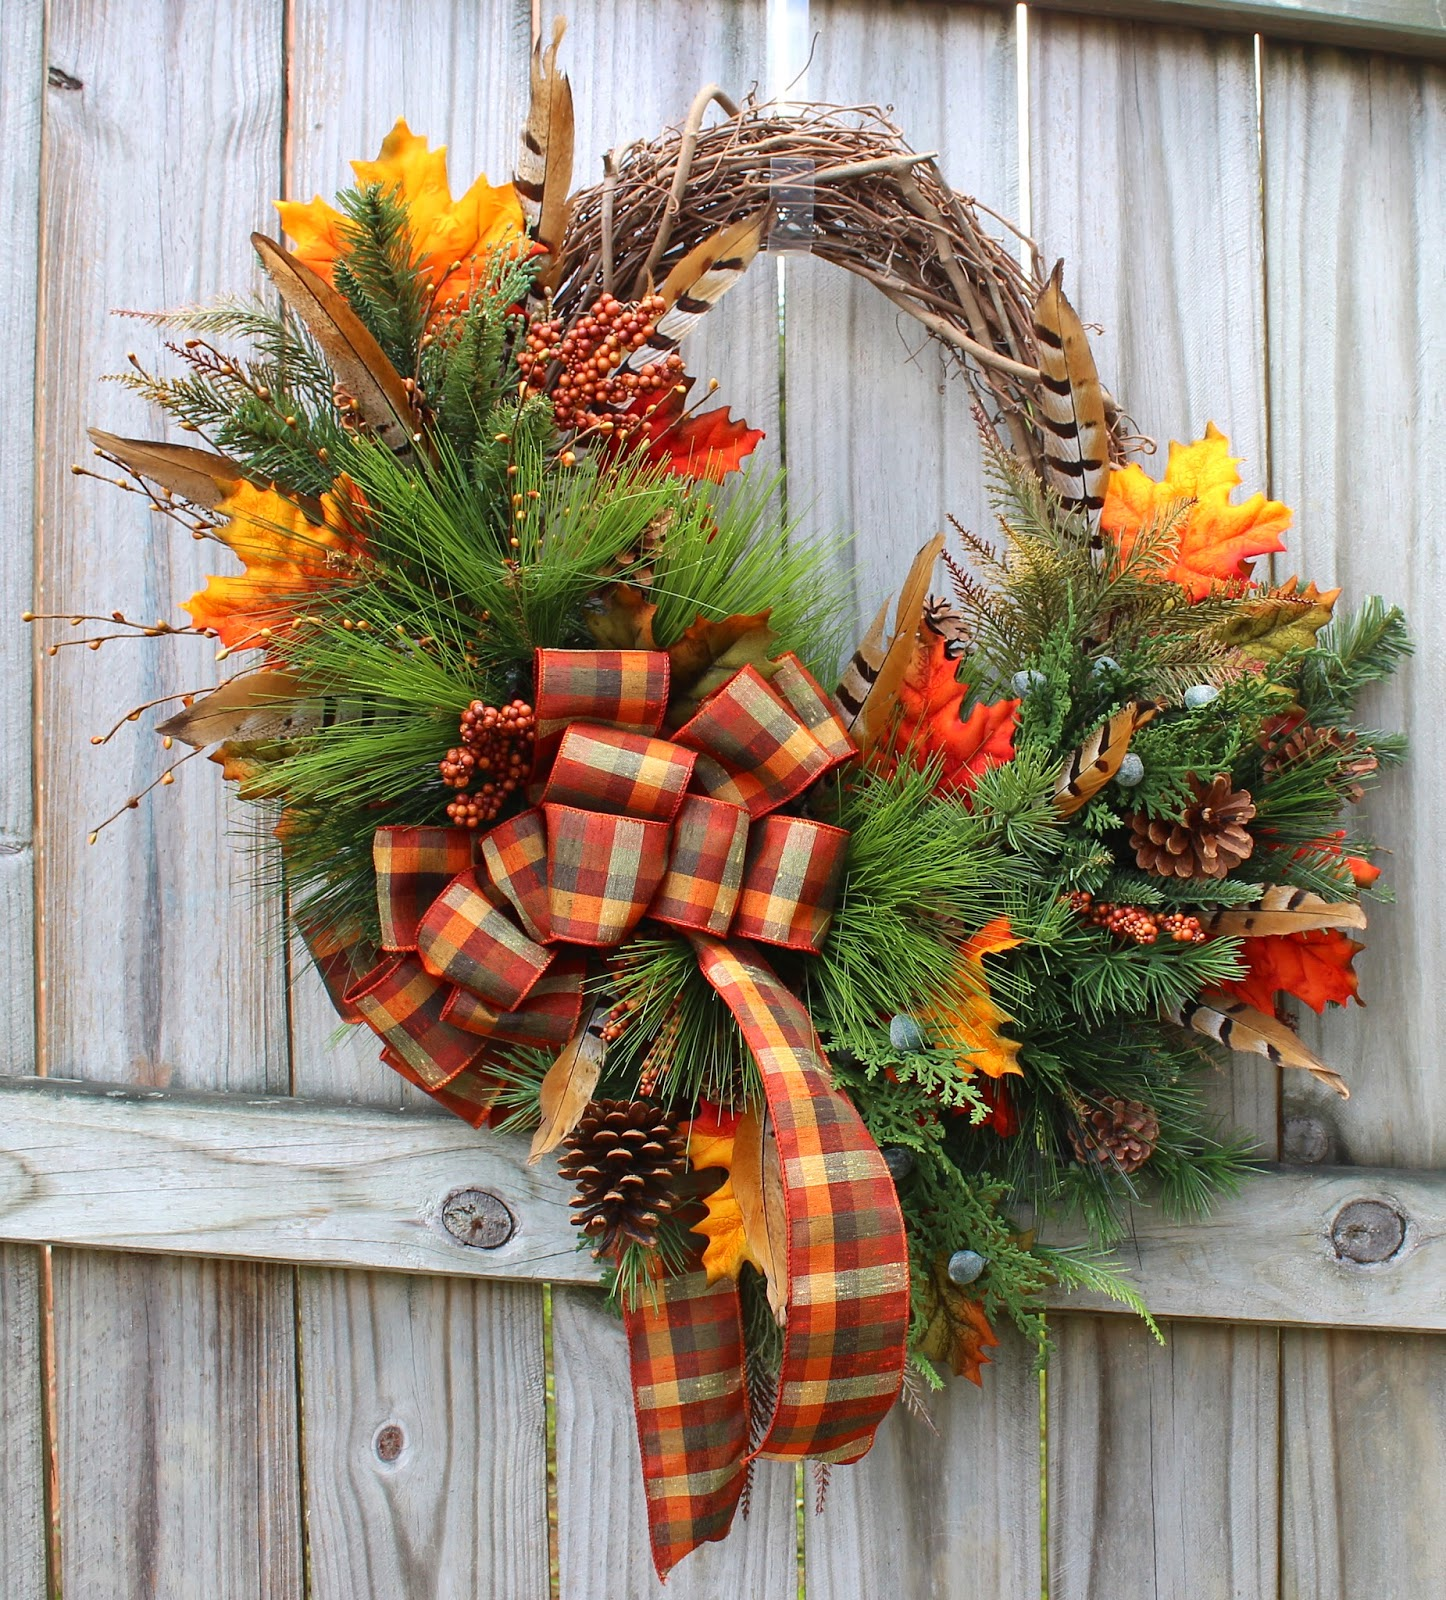 Rustic Woodland Cabin Fall Wreath, natural golden pheasant tail feather, harvest plaid tartan ribbon